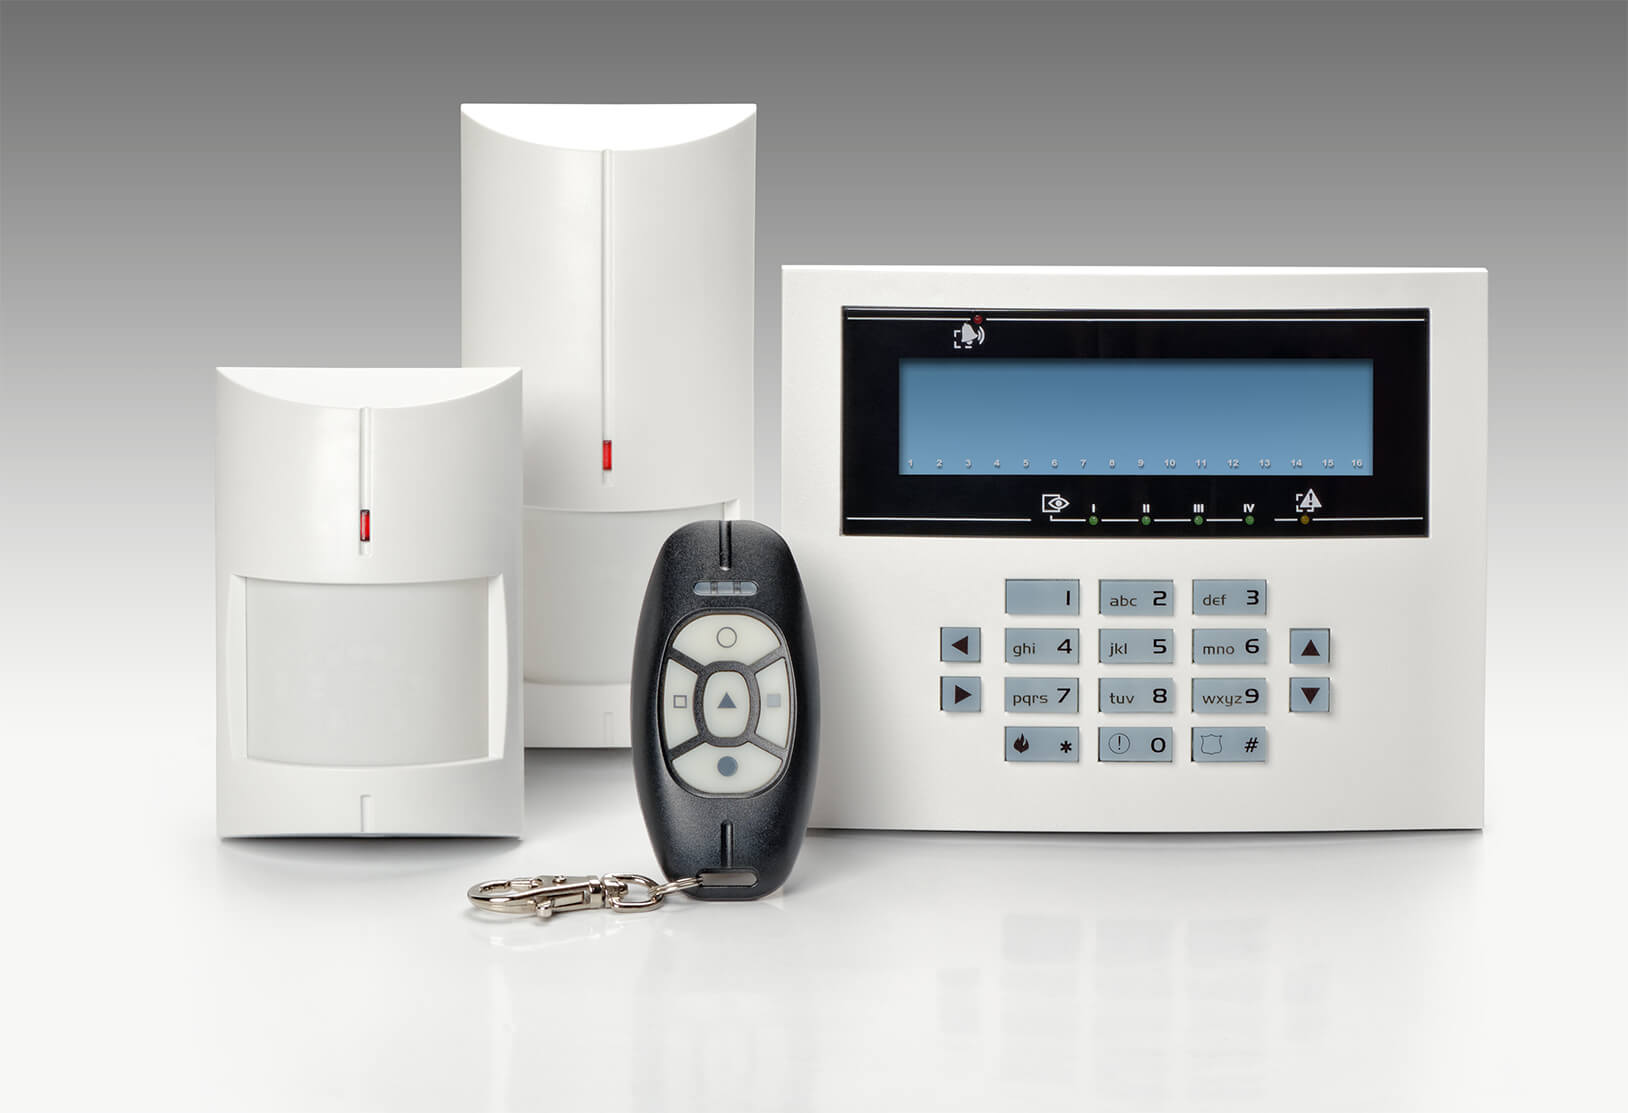 Business & Residential NACOSS Approved Burglar Alarms In Stockwell SW9 - Local Stockwell SW9 security company.Call 02078872244 - Dedicated to Safety & Security. Companies, shops and homes ..